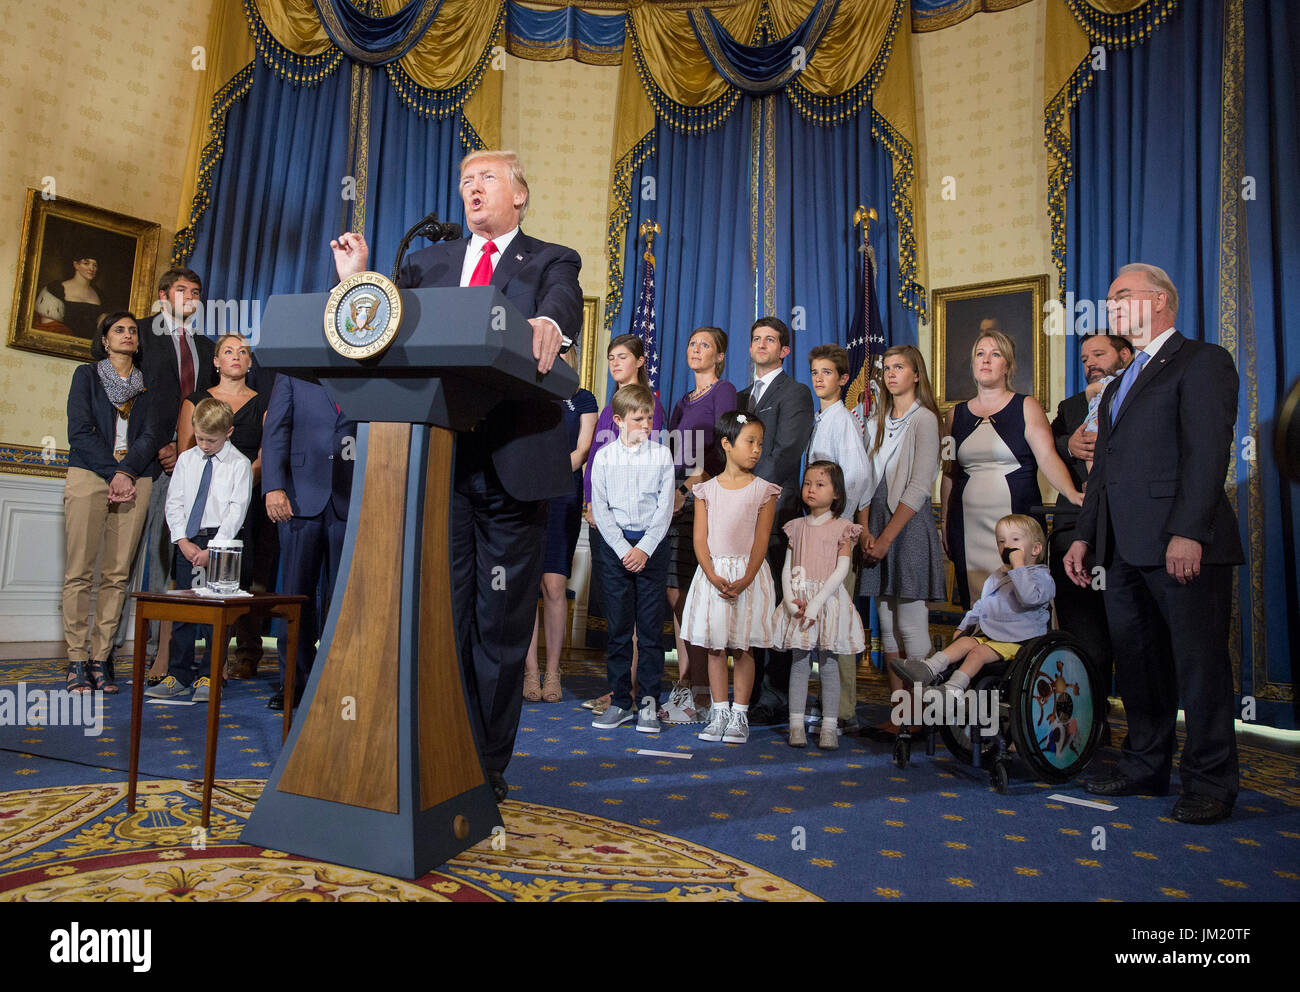 United States President Donald J. Trump makes a statement on health care while standing with 'victims of Obamacare' at The White House in Washington, DC, July 24, 2017. Credit: Chris Kleponis/CNP /MediaPunch - Stock Image